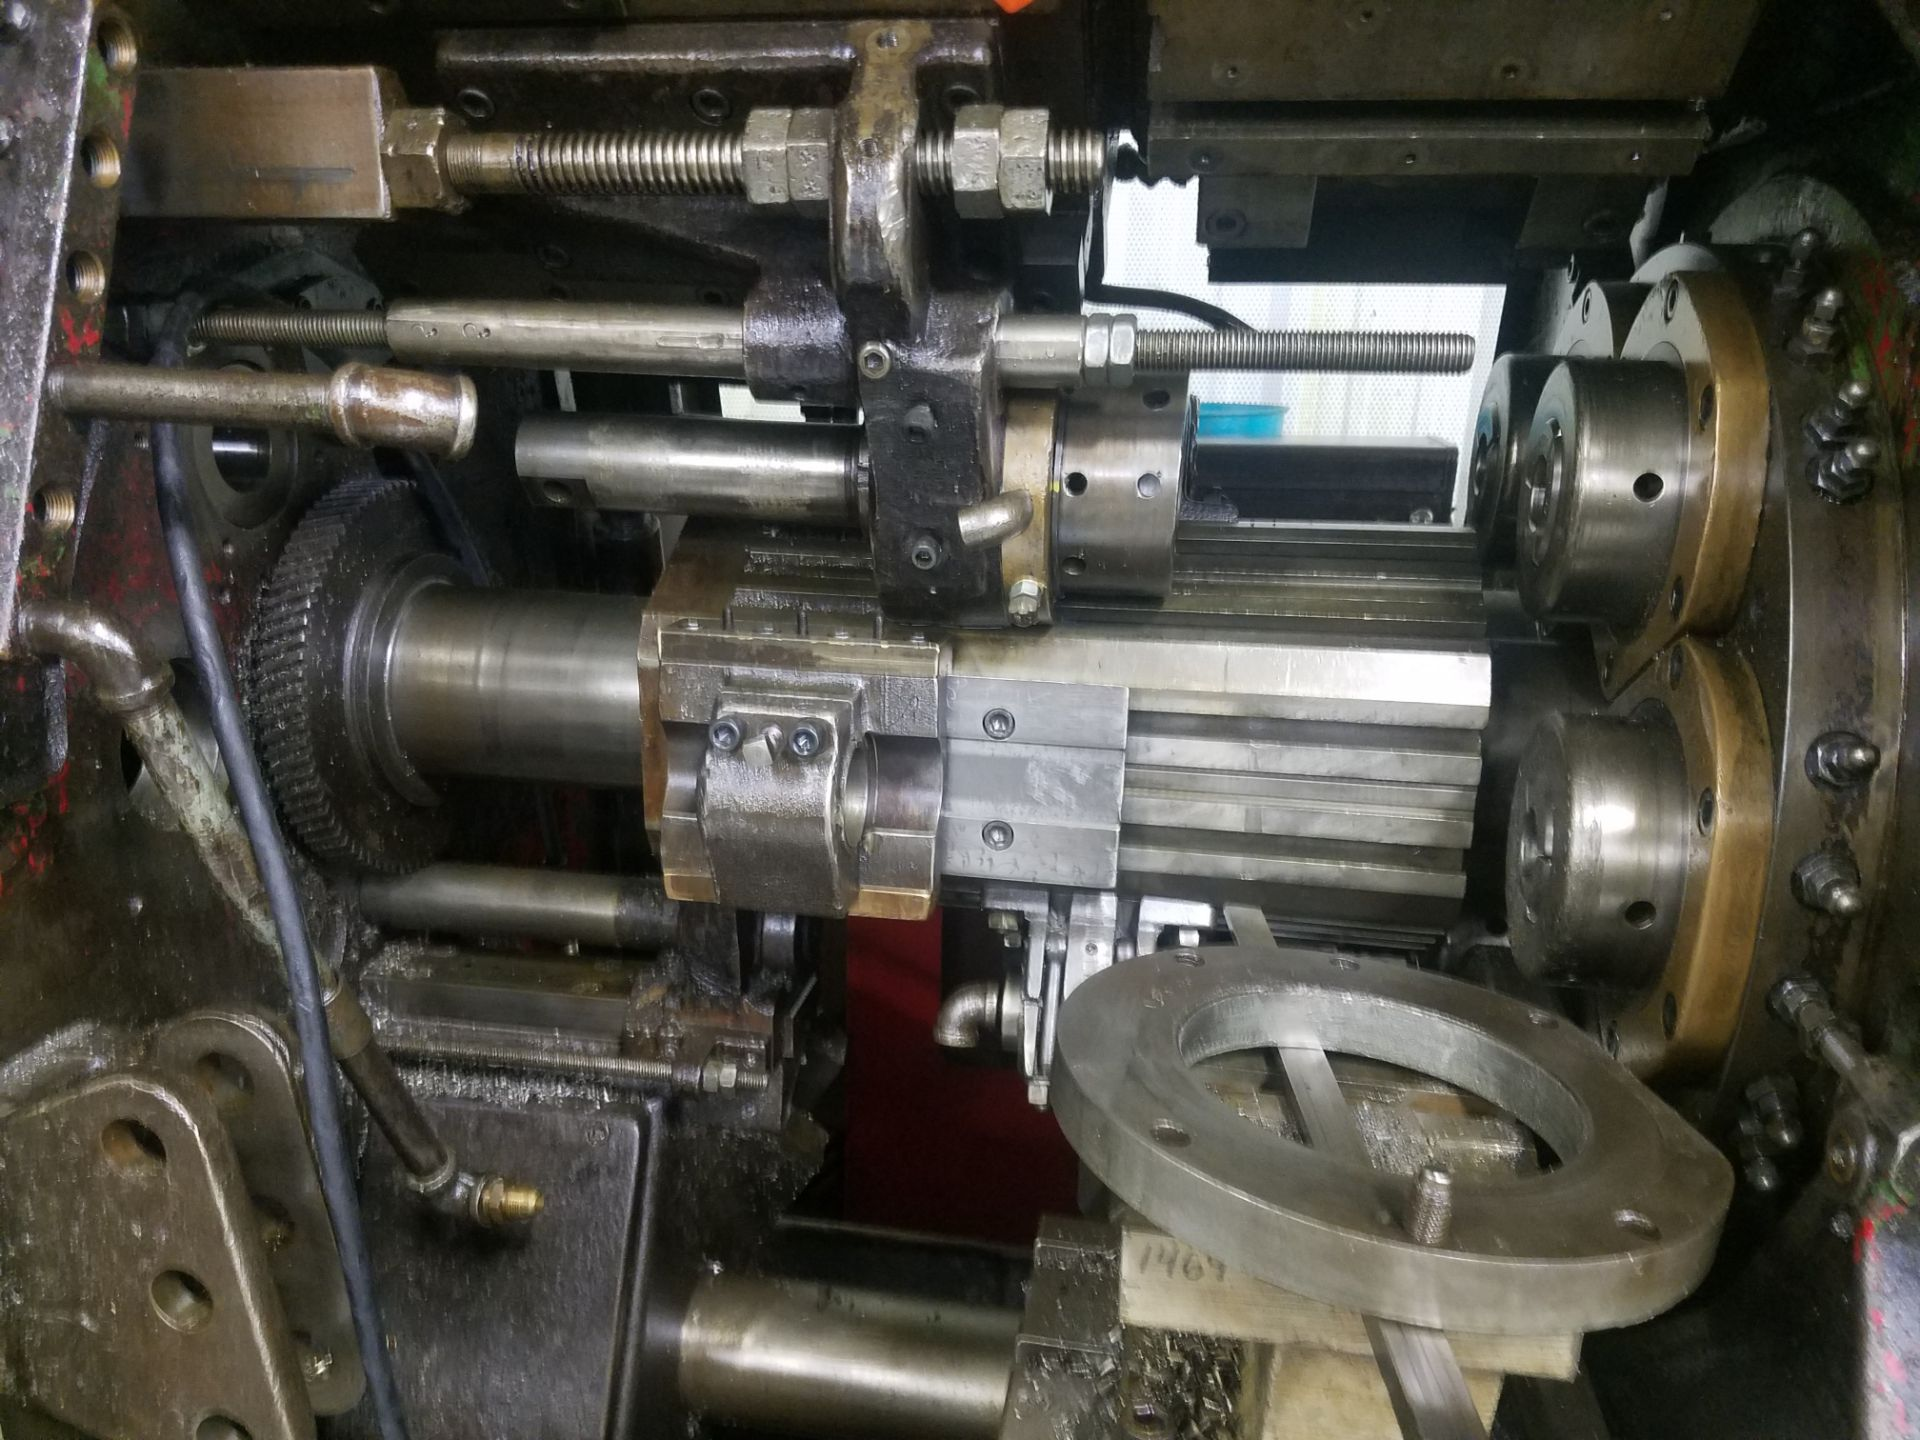 Lotto 34 - Acme Gridley RB6 Automatic Screw Machine, s/n 41397, 1 5/8 In., Chucker, 6 Spindle, Loading Fee